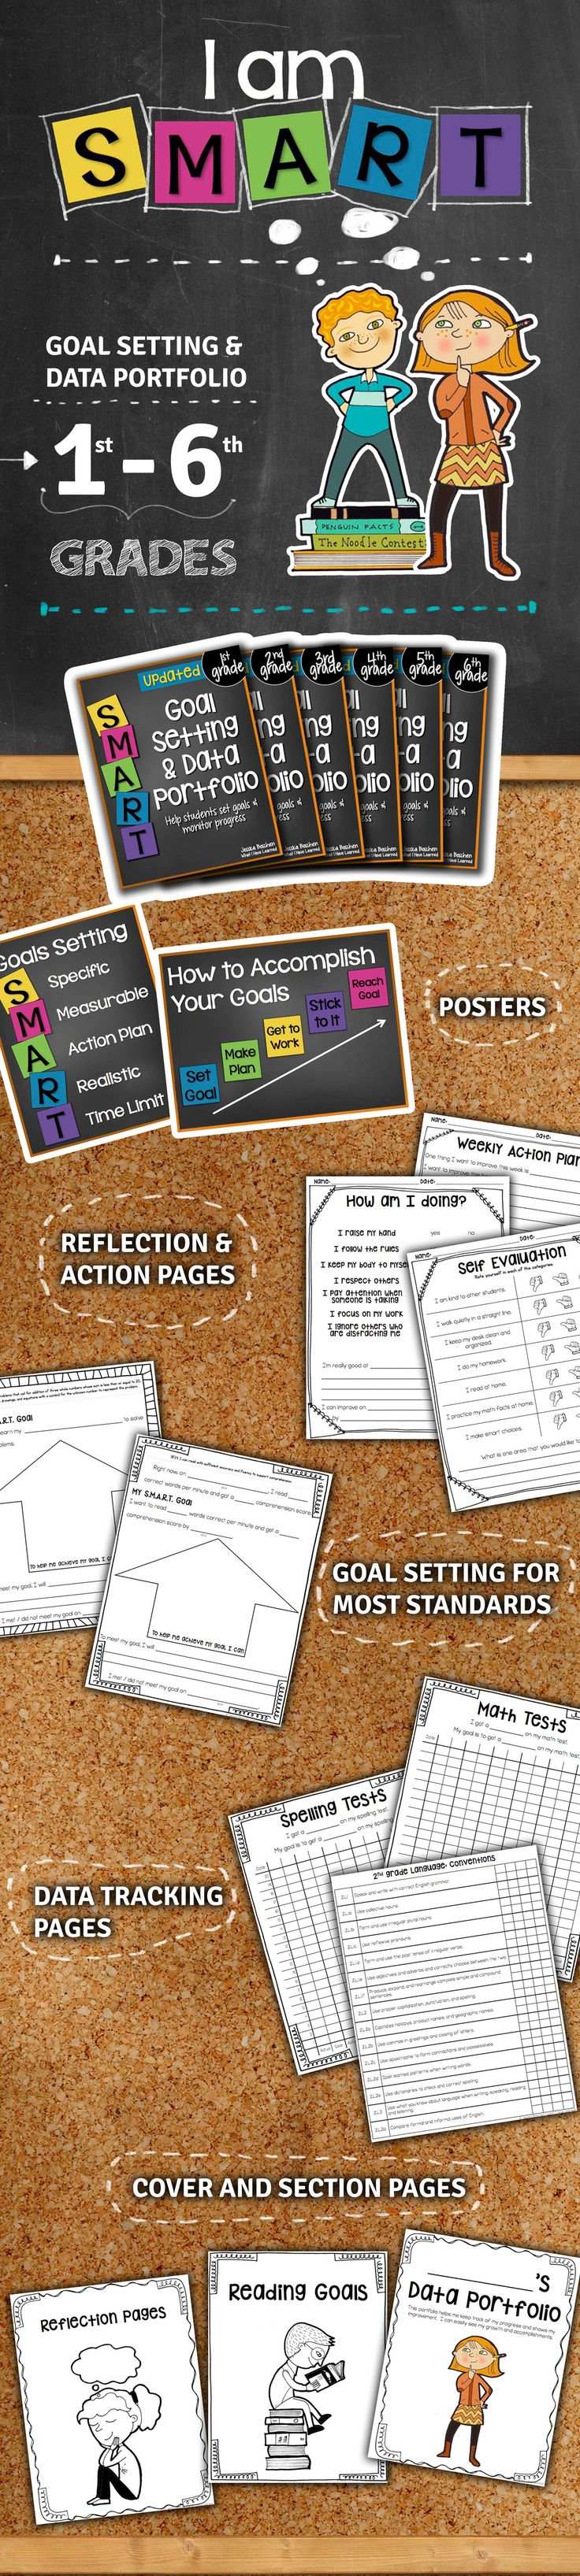 SMART Goal Setting in elementary school.  Help students set SMART goals by setting strategic, measurable goals with an action plan that are realistic and timely.  Included are data binders, goal setting forms, reflection pages and much, much more. | Student Directed Learning | Data-driven Education | Teaching Metacognition | Creating Student Buy-In | Teaching Personal Responsibility…